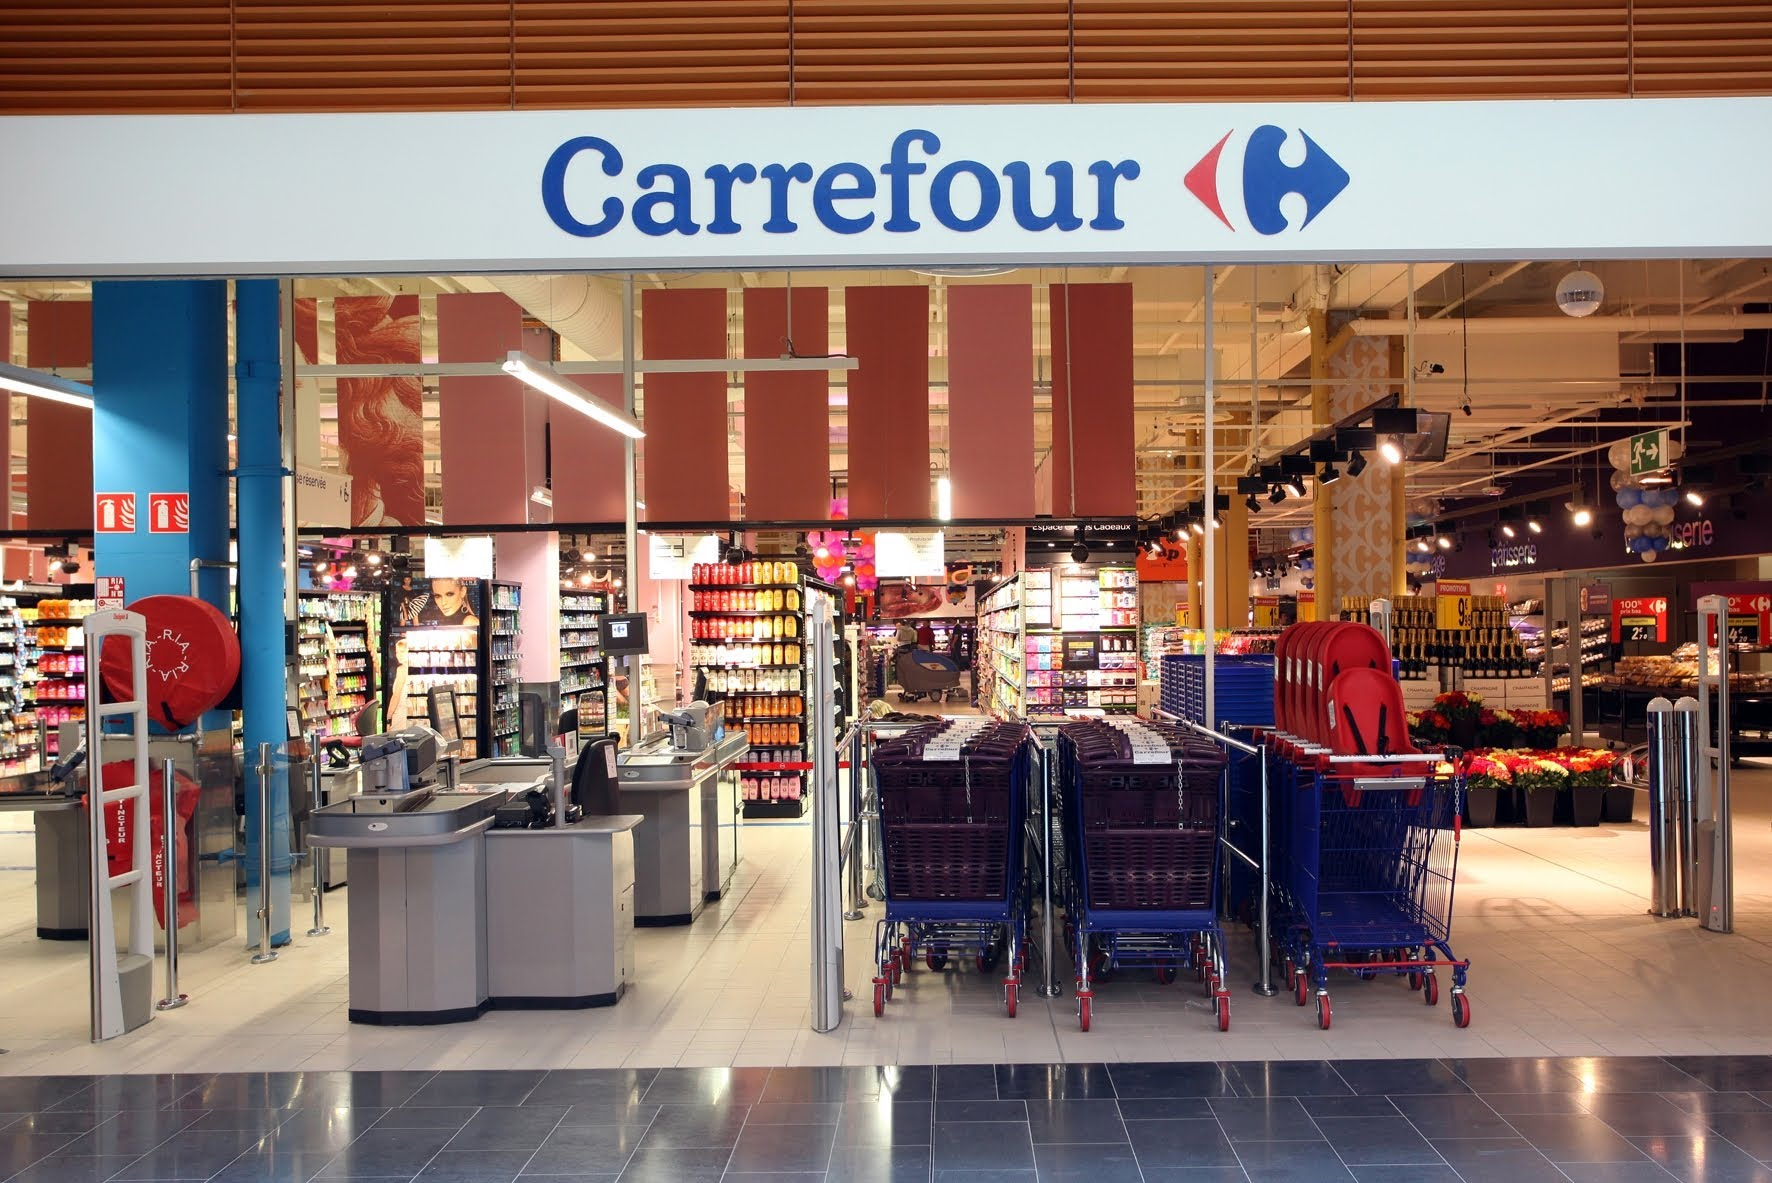 carrefour big supermarket events and guide barcelona home. Black Bedroom Furniture Sets. Home Design Ideas